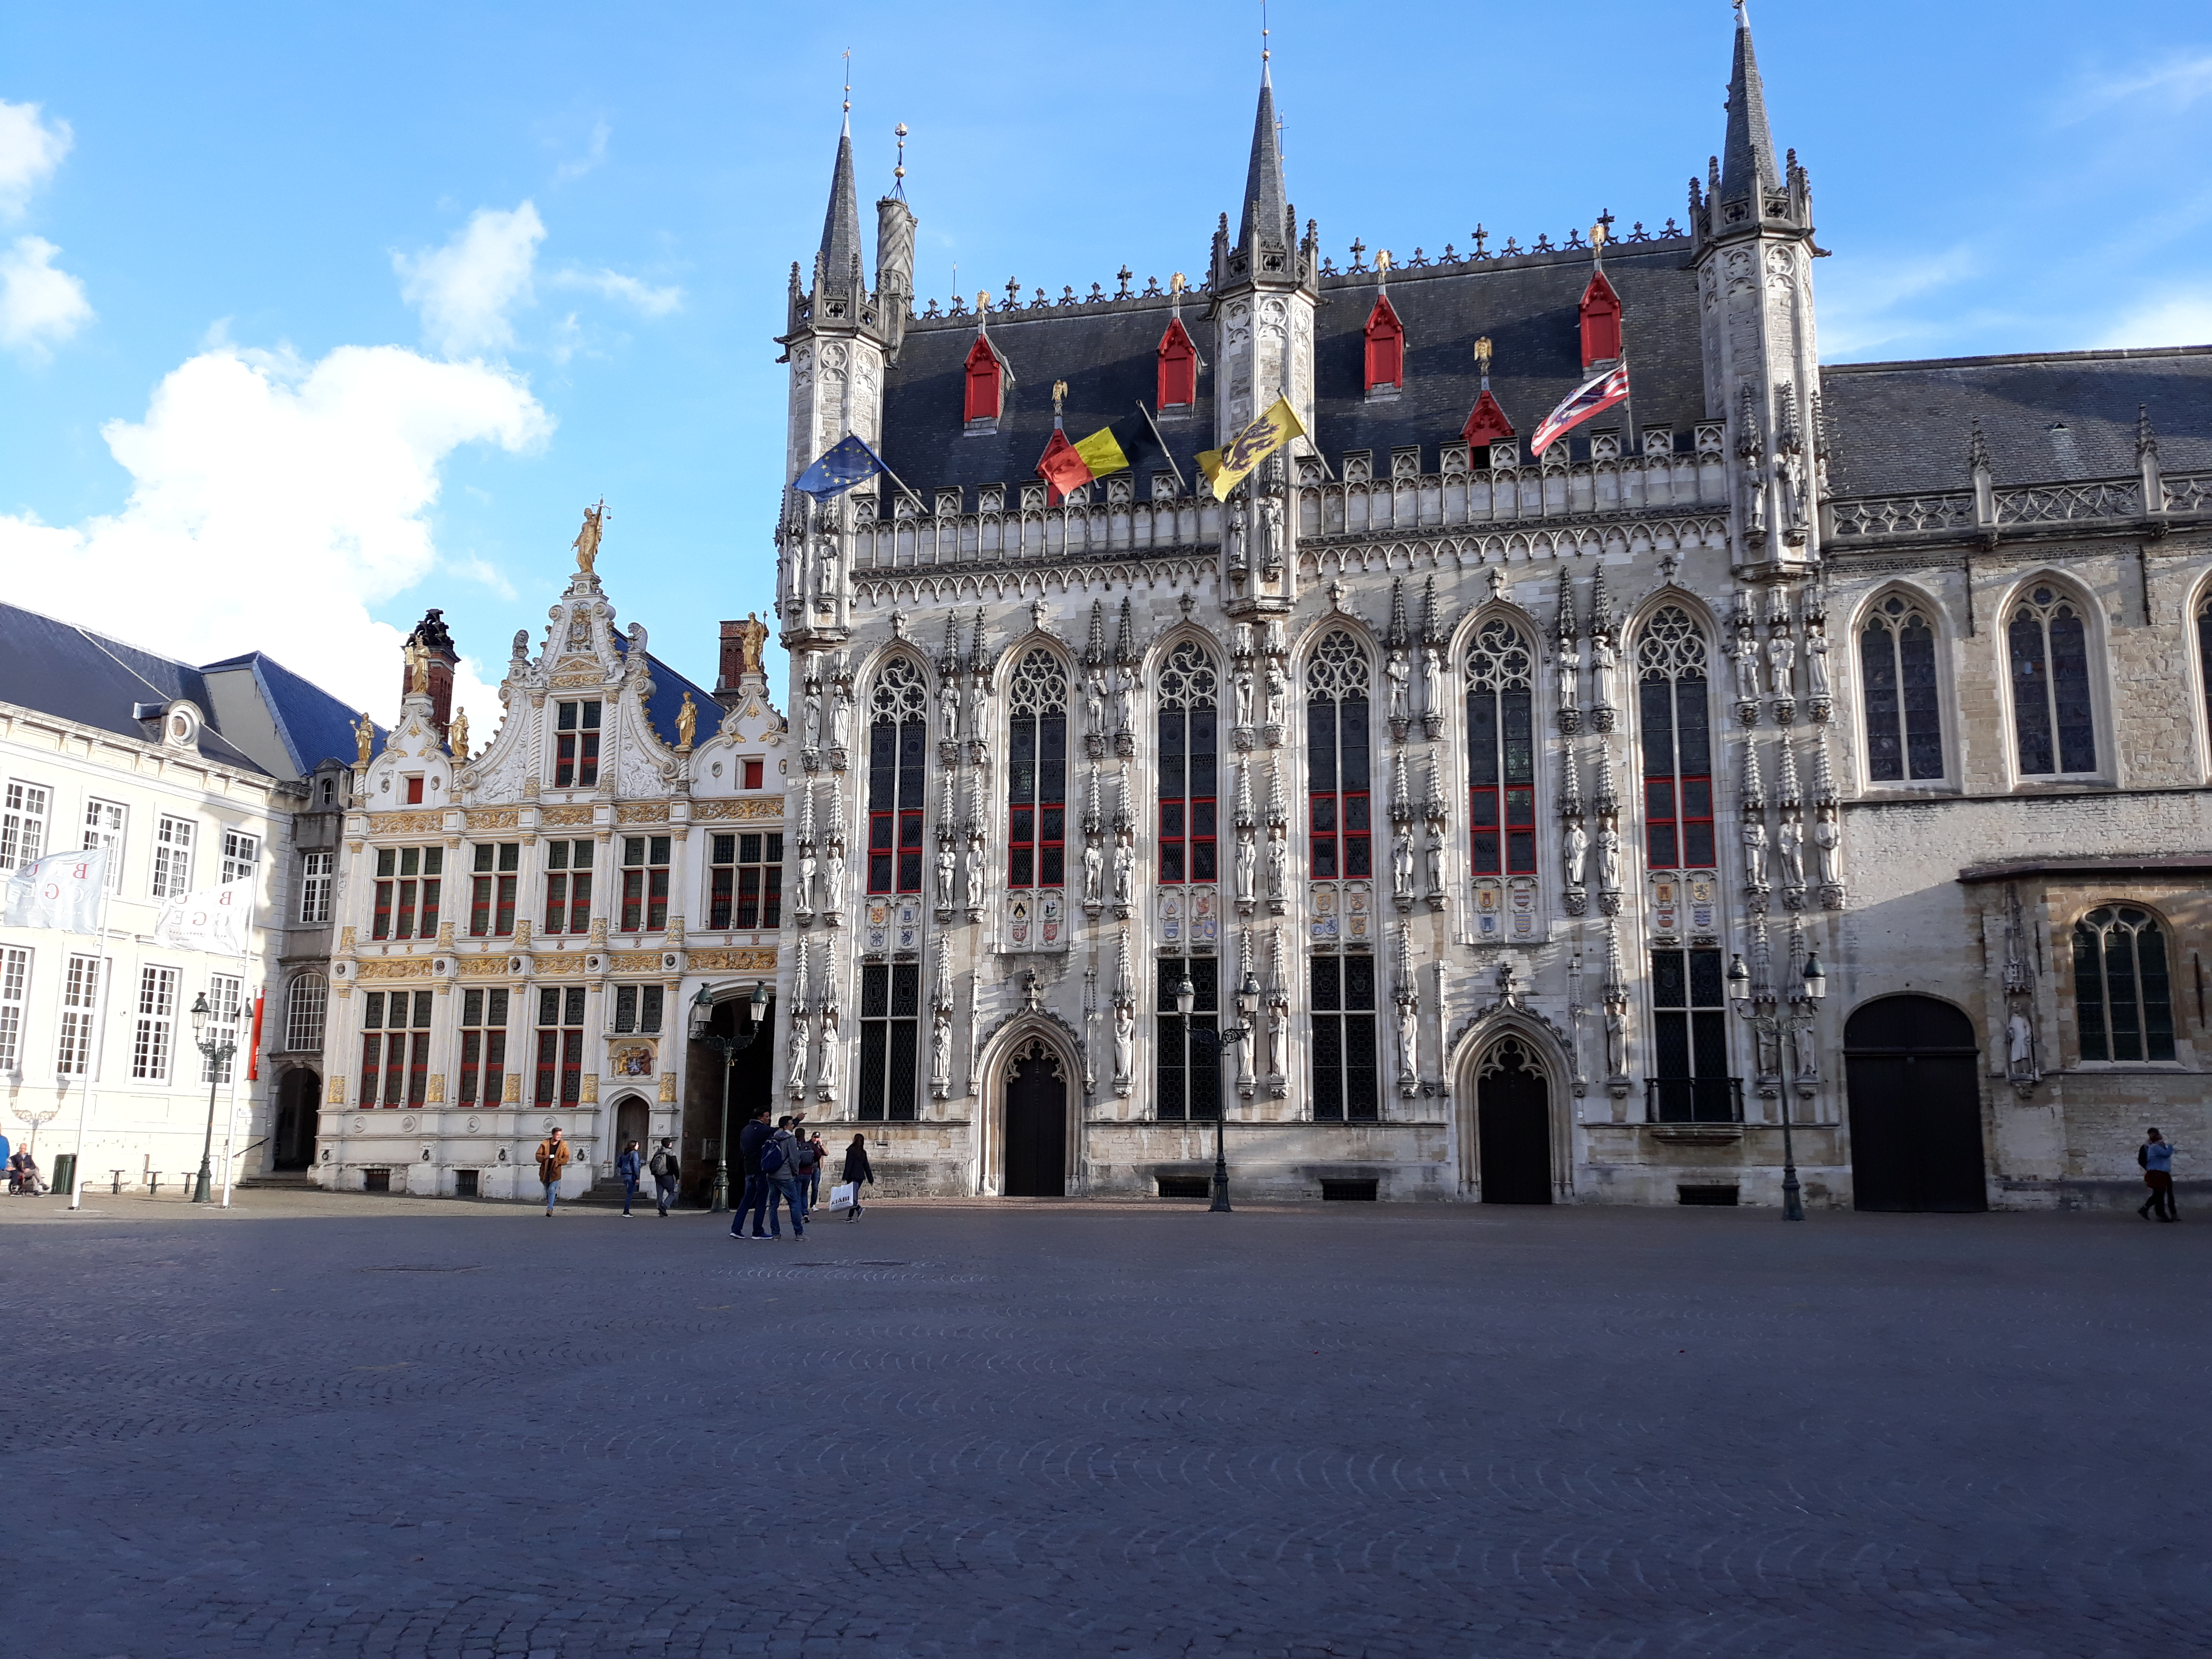 Bruges - palace of justice